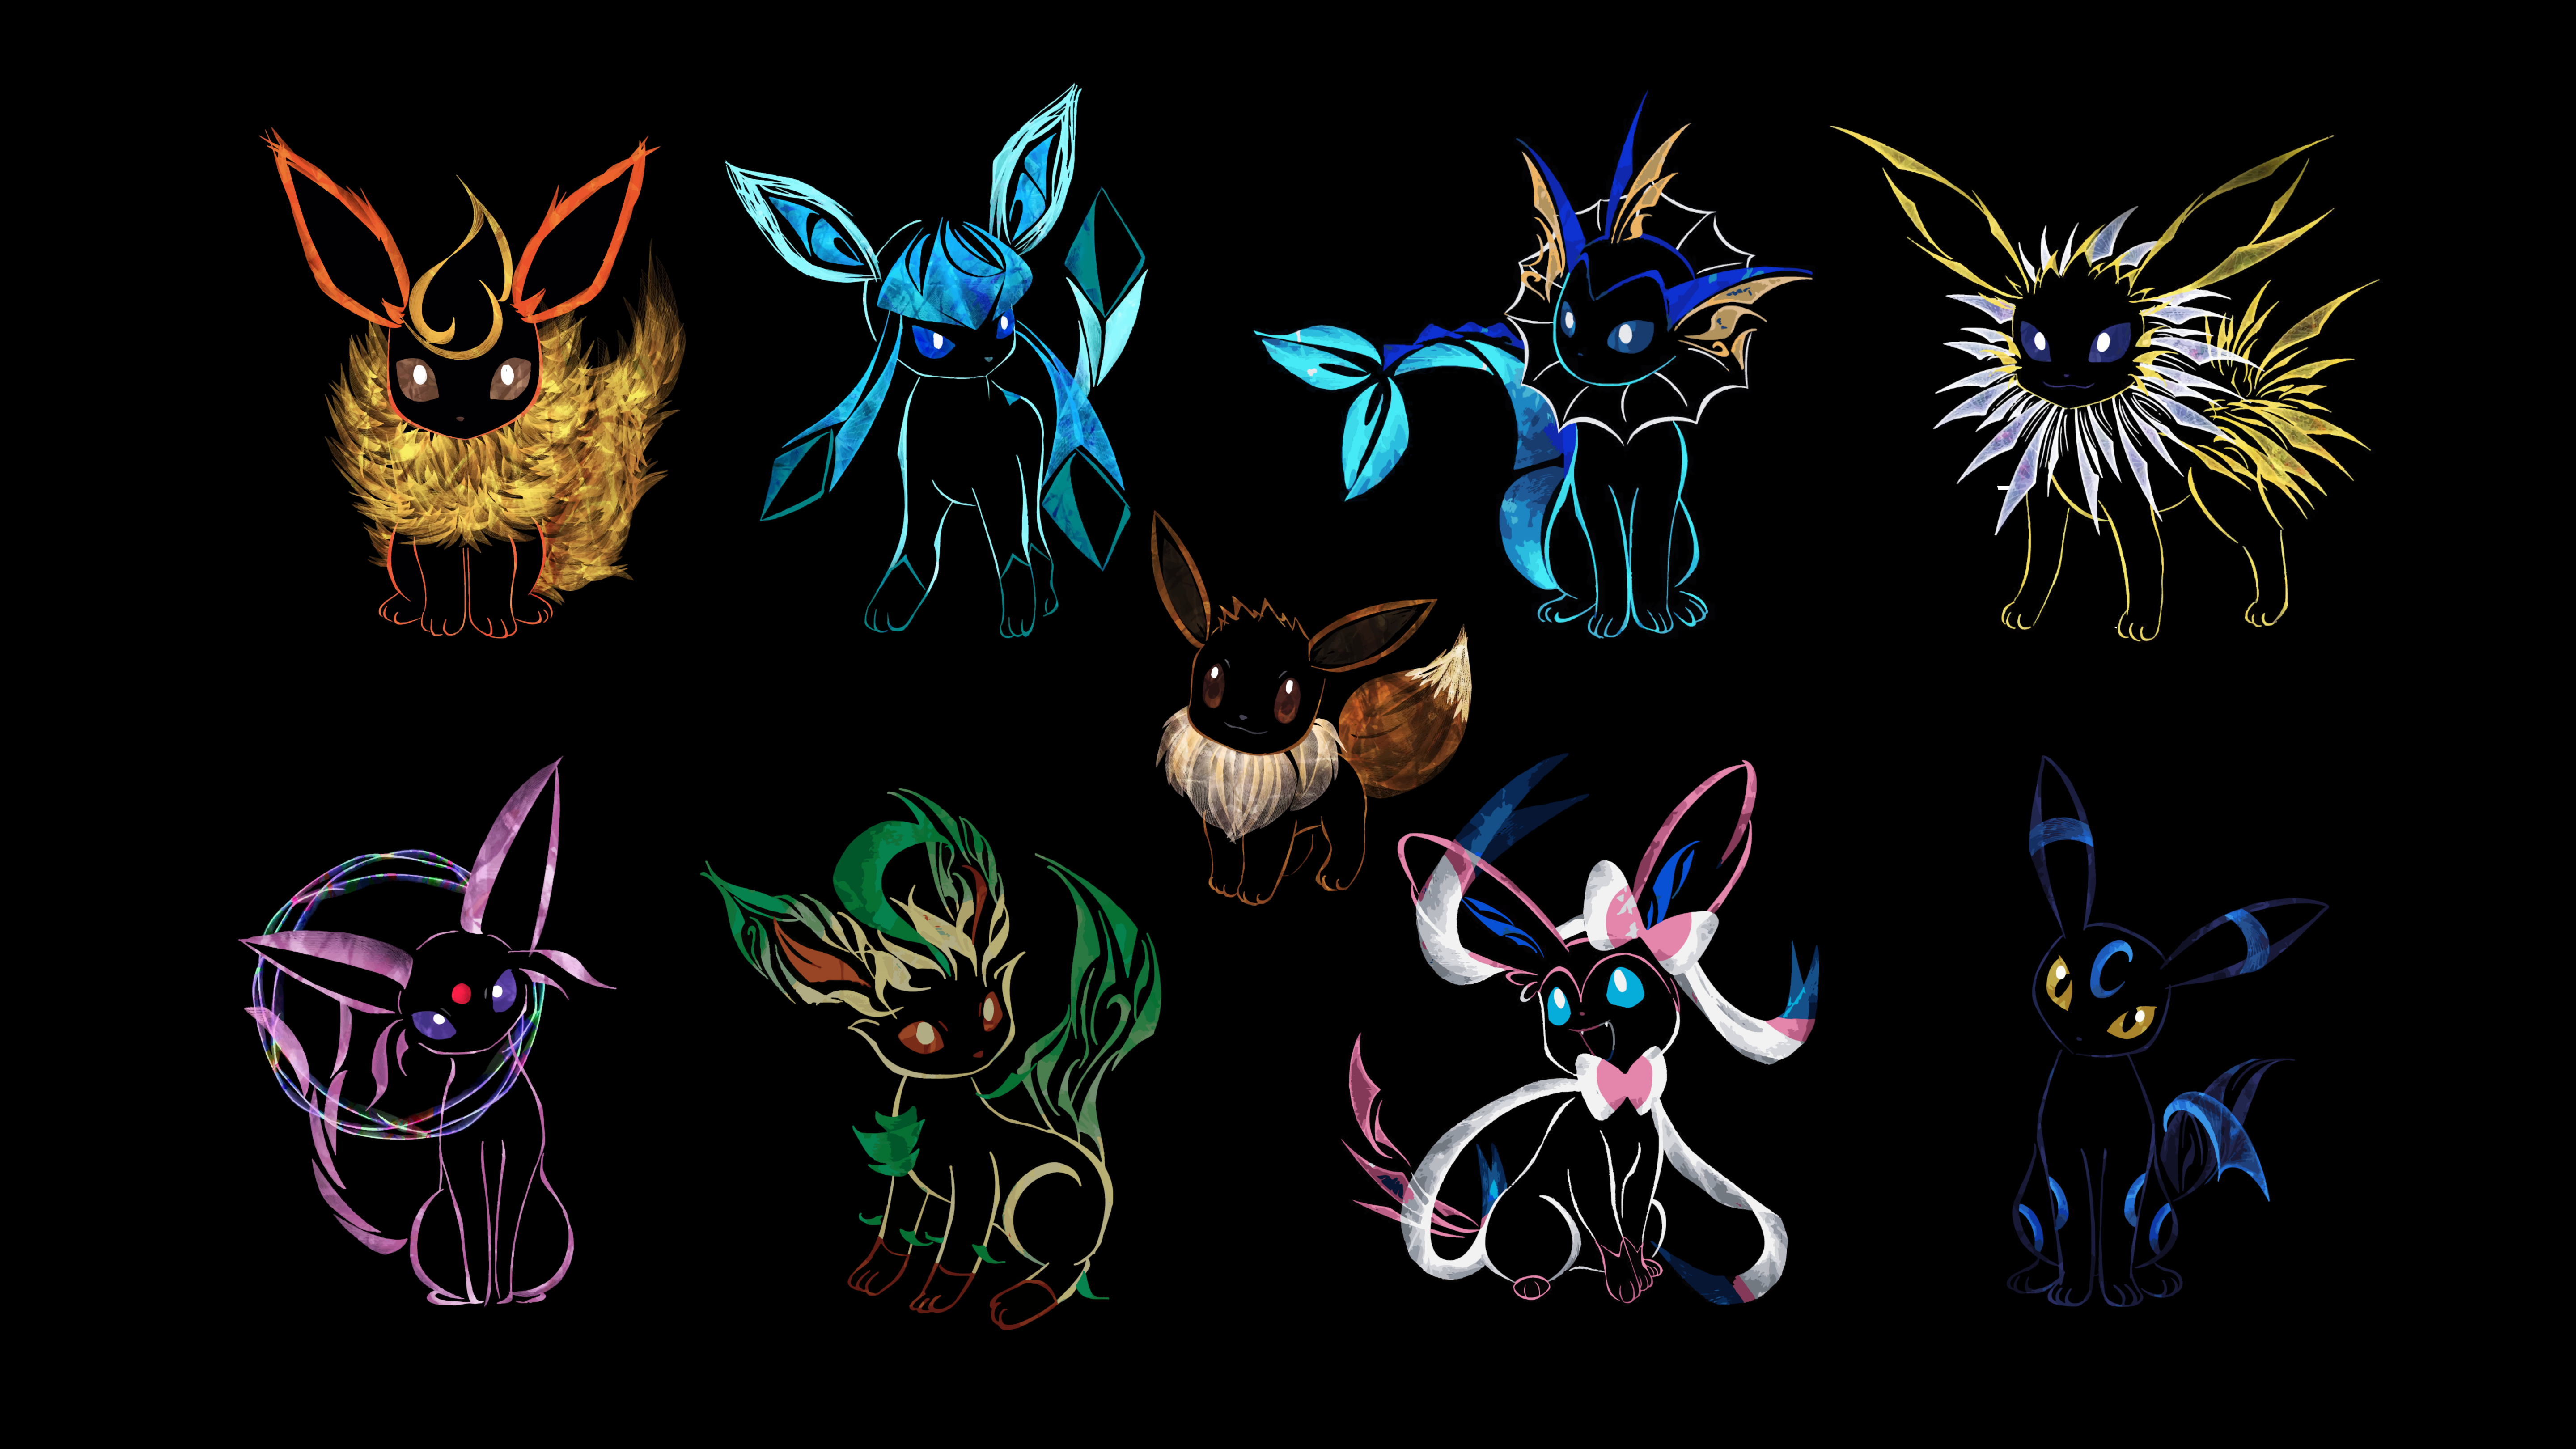 Eevee Wallpaper (1920 x 1080) in 2020 Eevee wallpaper